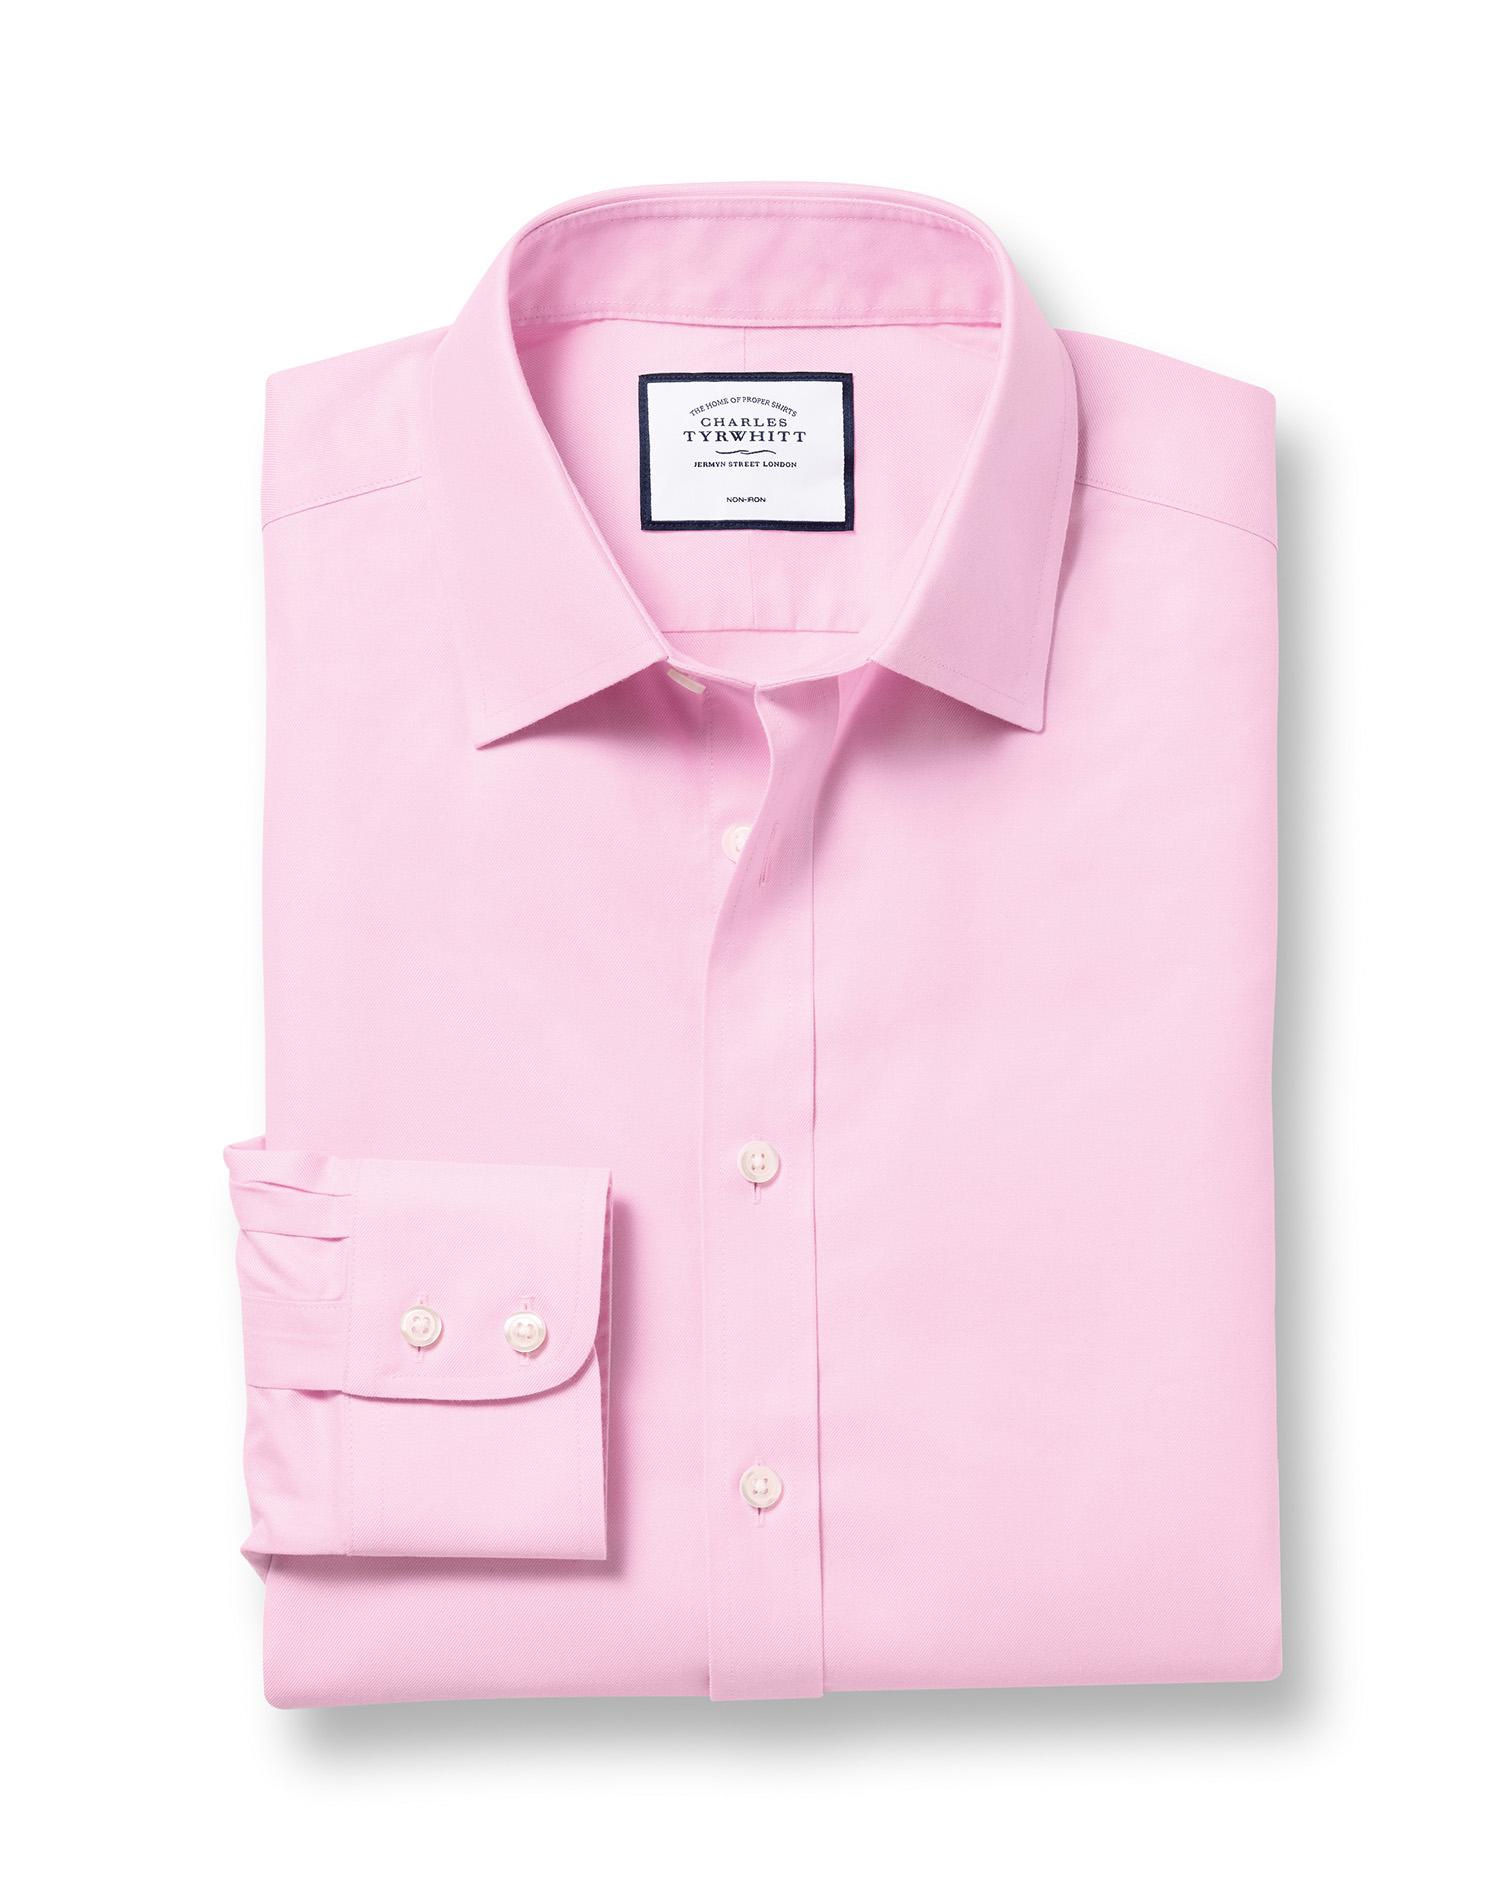 Slim Fit Pink Non-Iron Twill Cotton Formal Shirt Double Cuff Size 15.5/33 by Charles Tyrwhitt